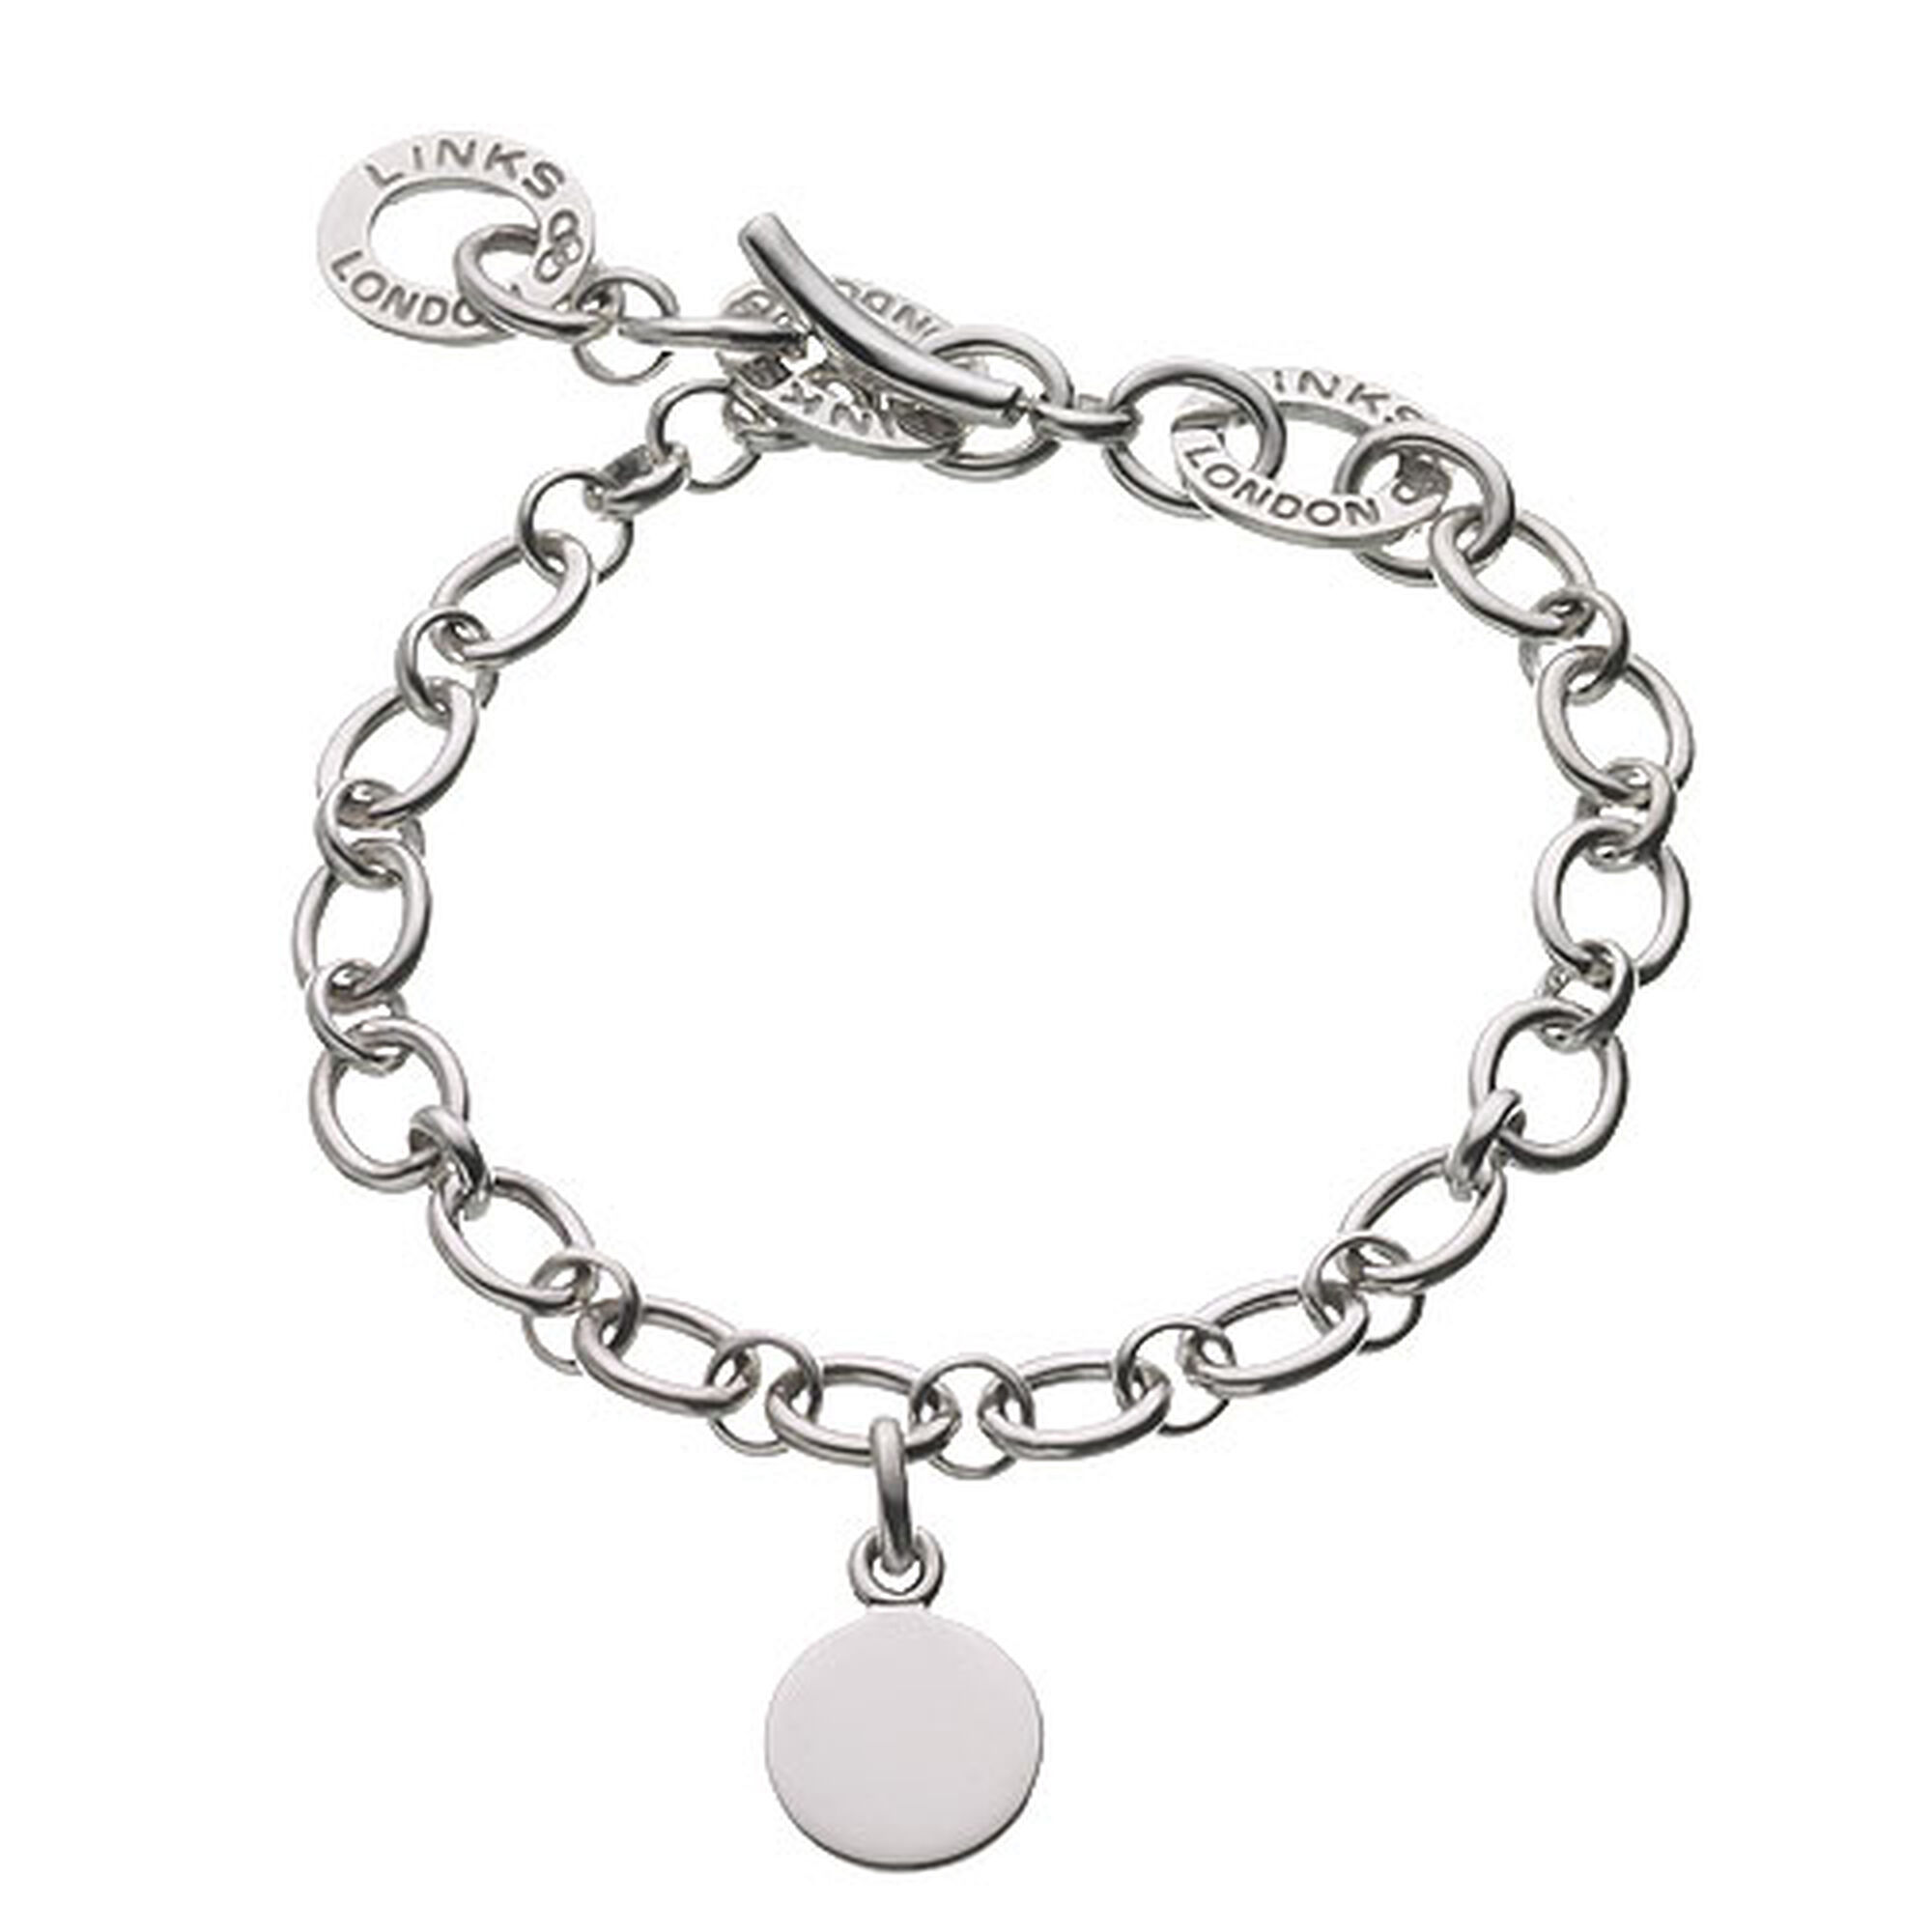 bracelets charm bracelet world the bangles around